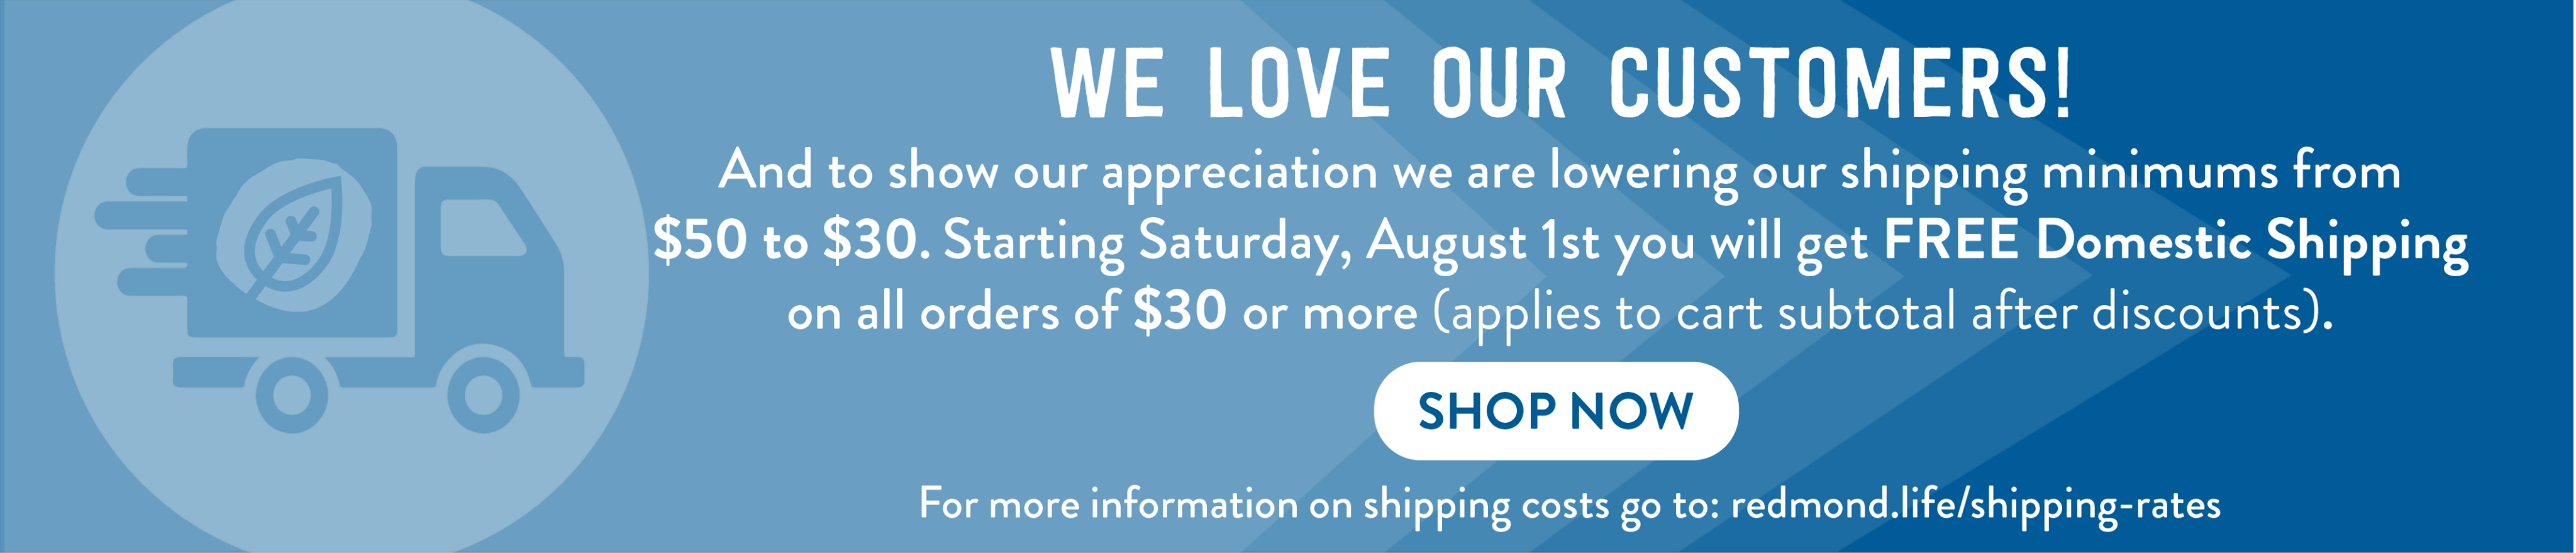 Shipping Promo Free over $30